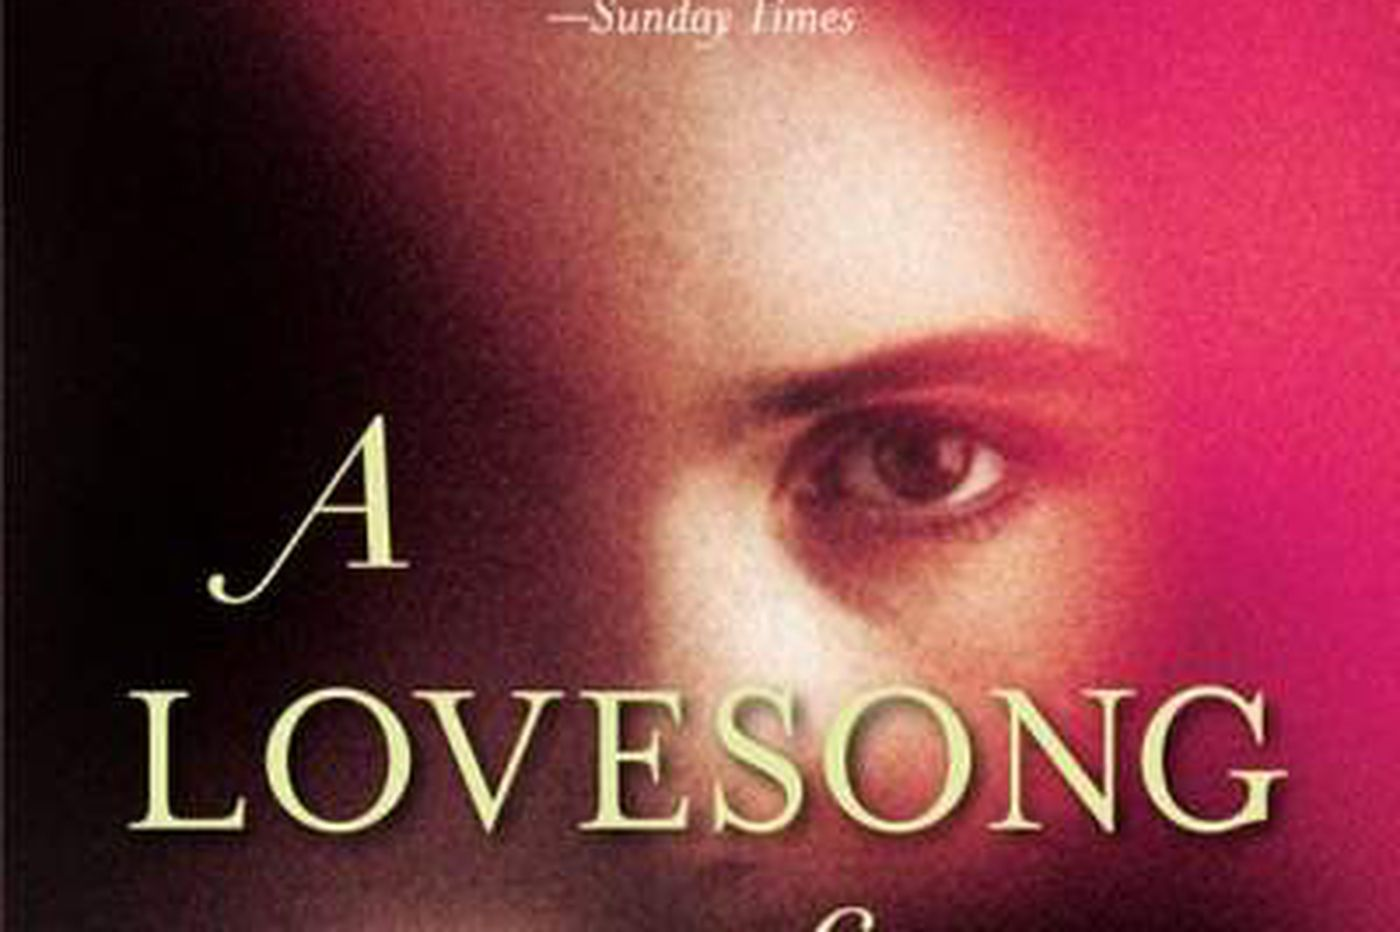 Book review: Ruth Prawer Jhabvala's story collection 'A Lovesong for India'